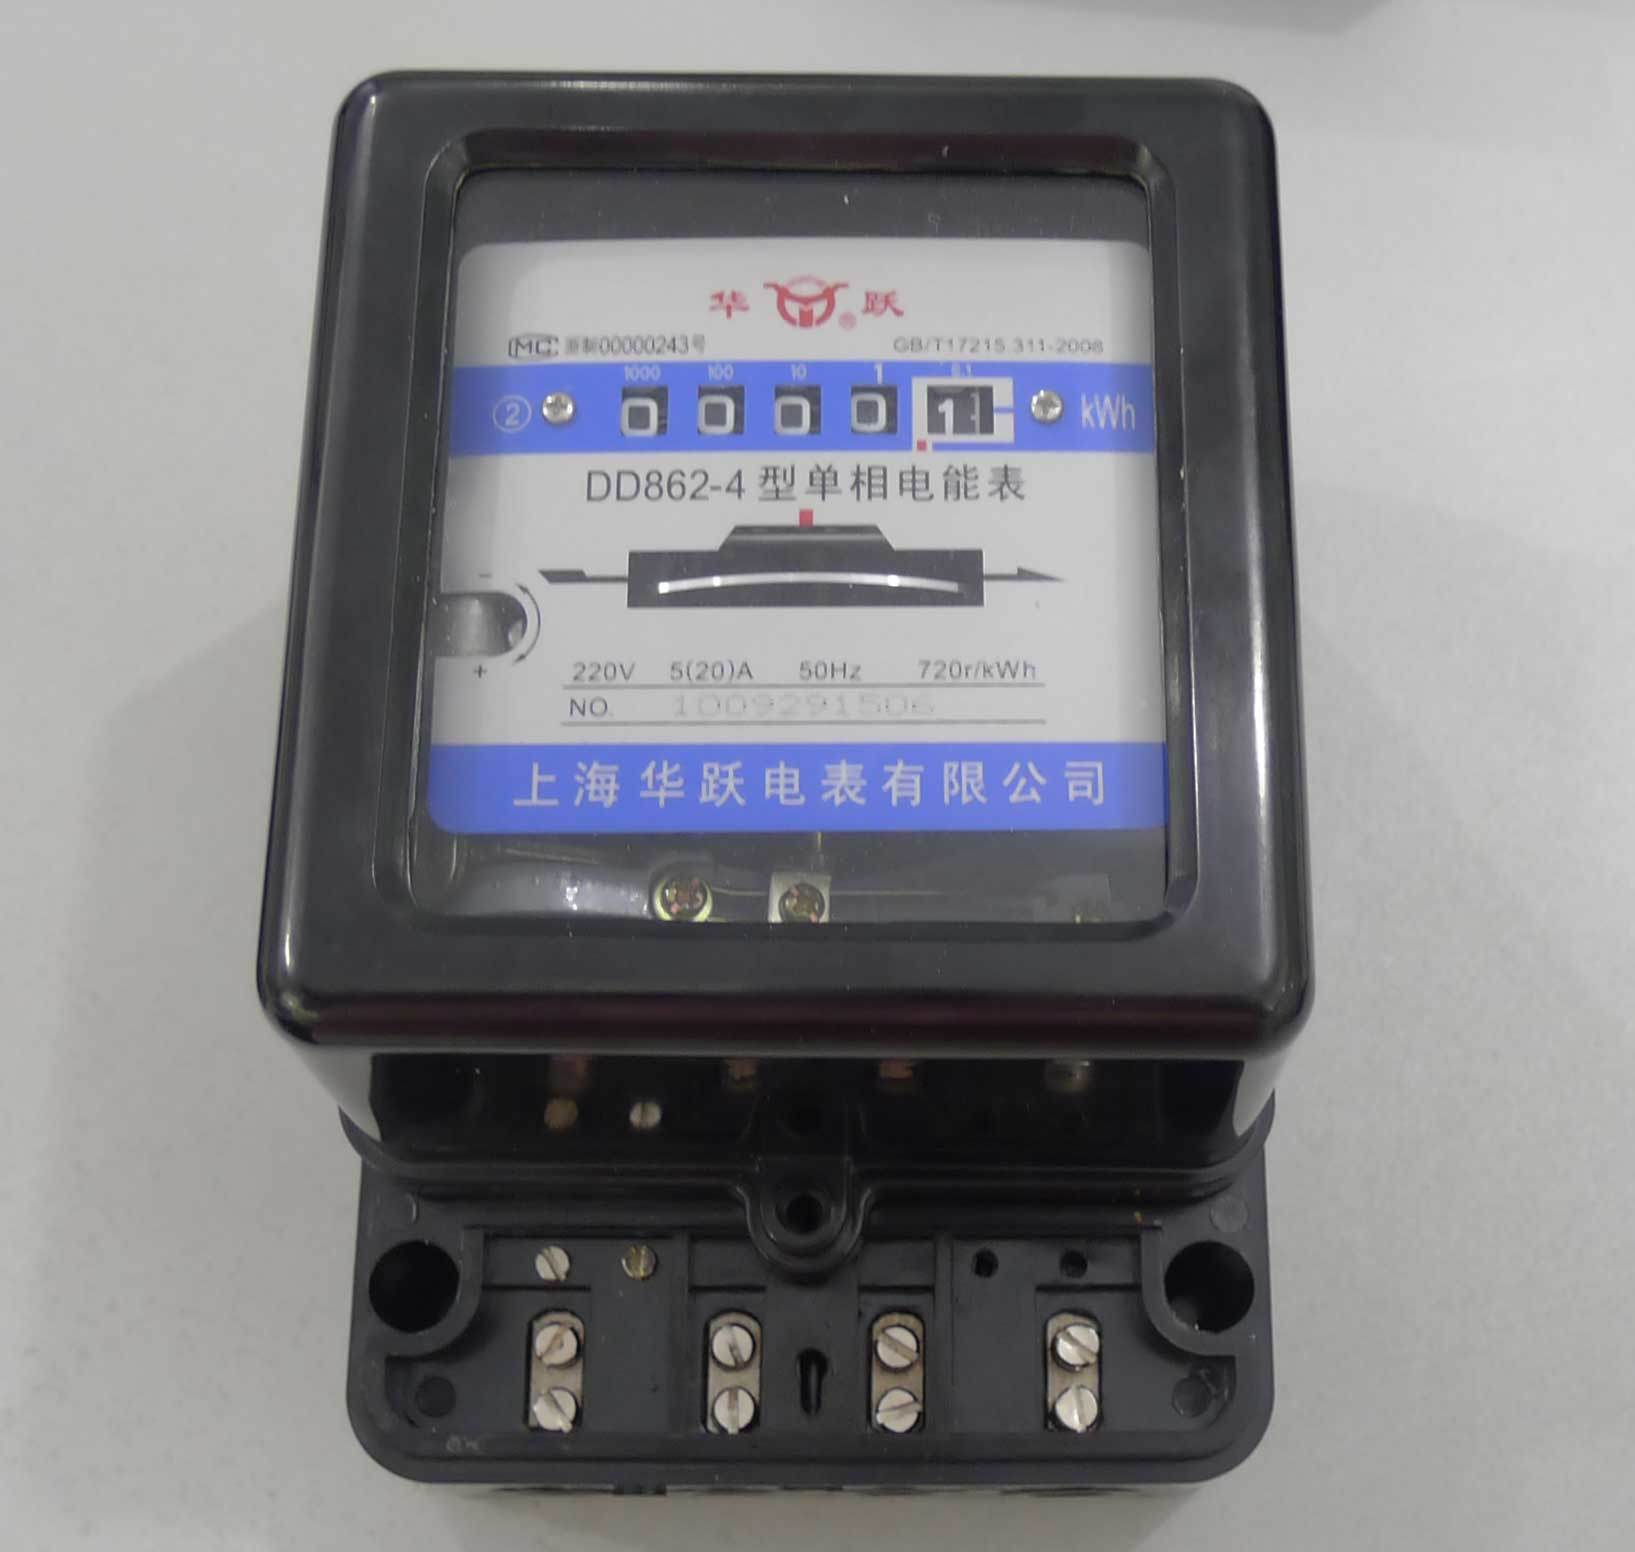 Single Phase Meter Mechanical : China single phase mechanical energy meter dd